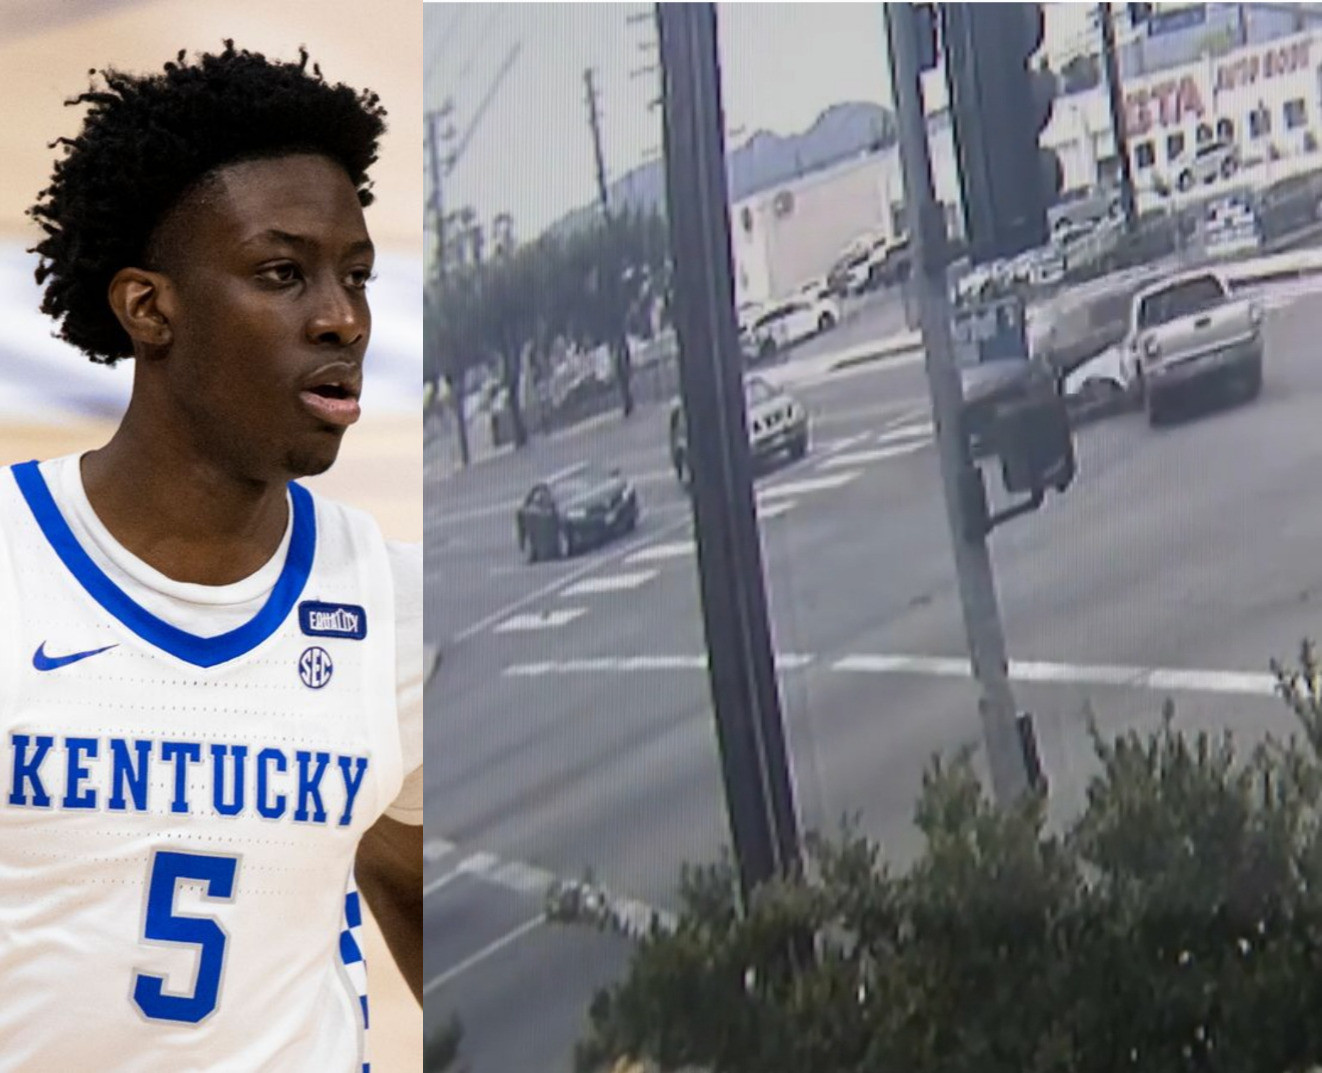 Video shows the fatal accident that took basketball player, Terrence Clarke